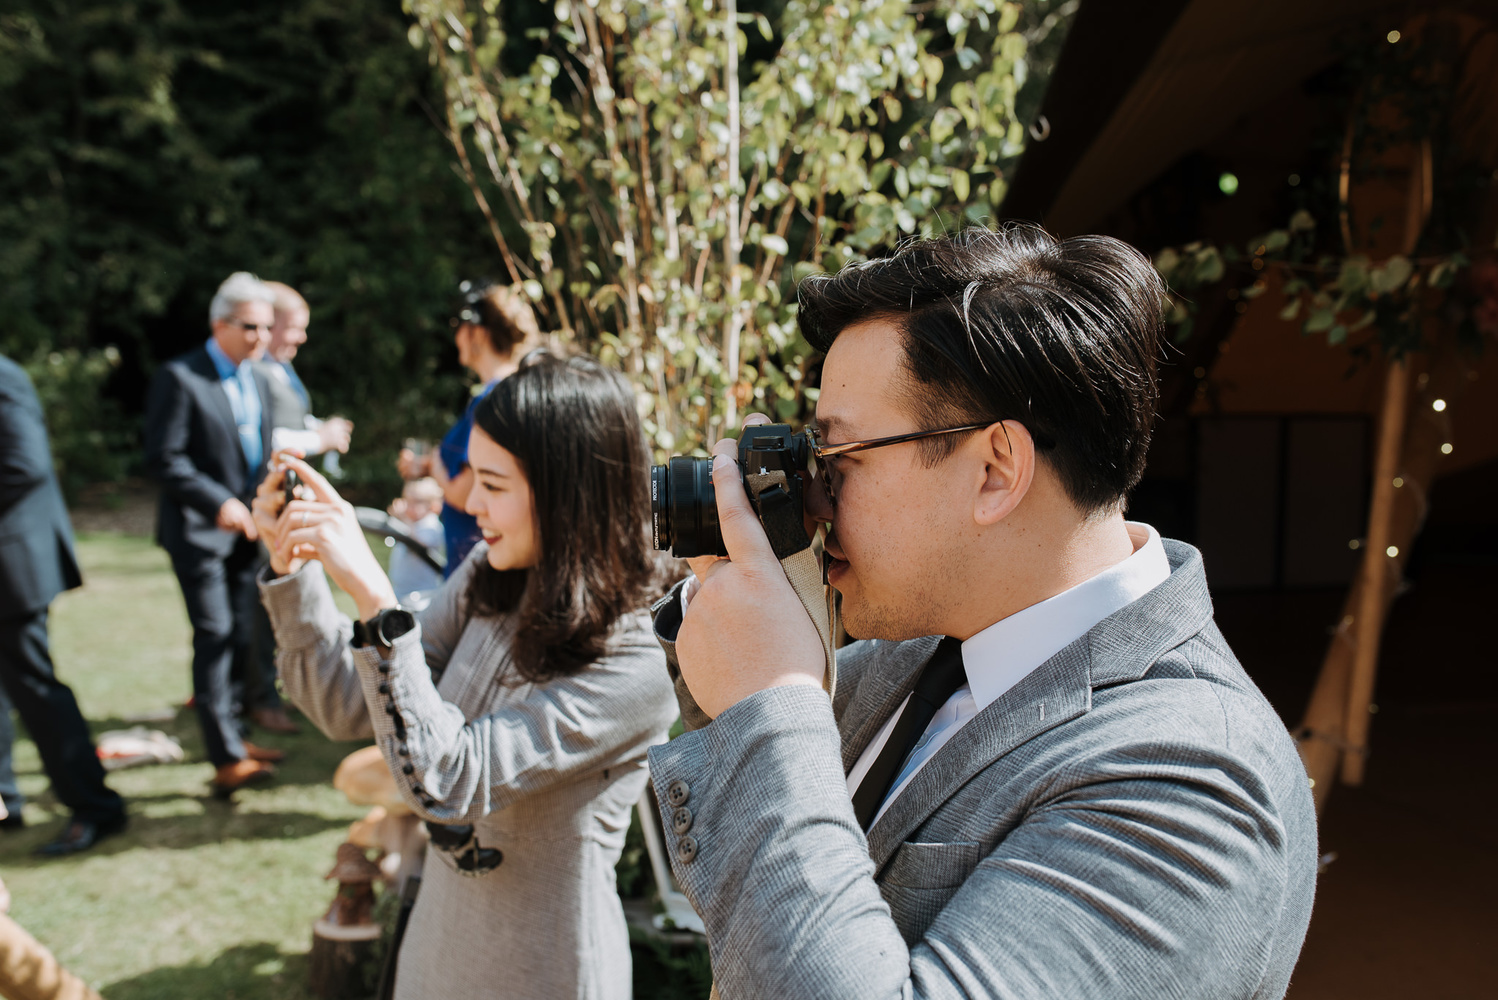 Wedding guests taking photographs